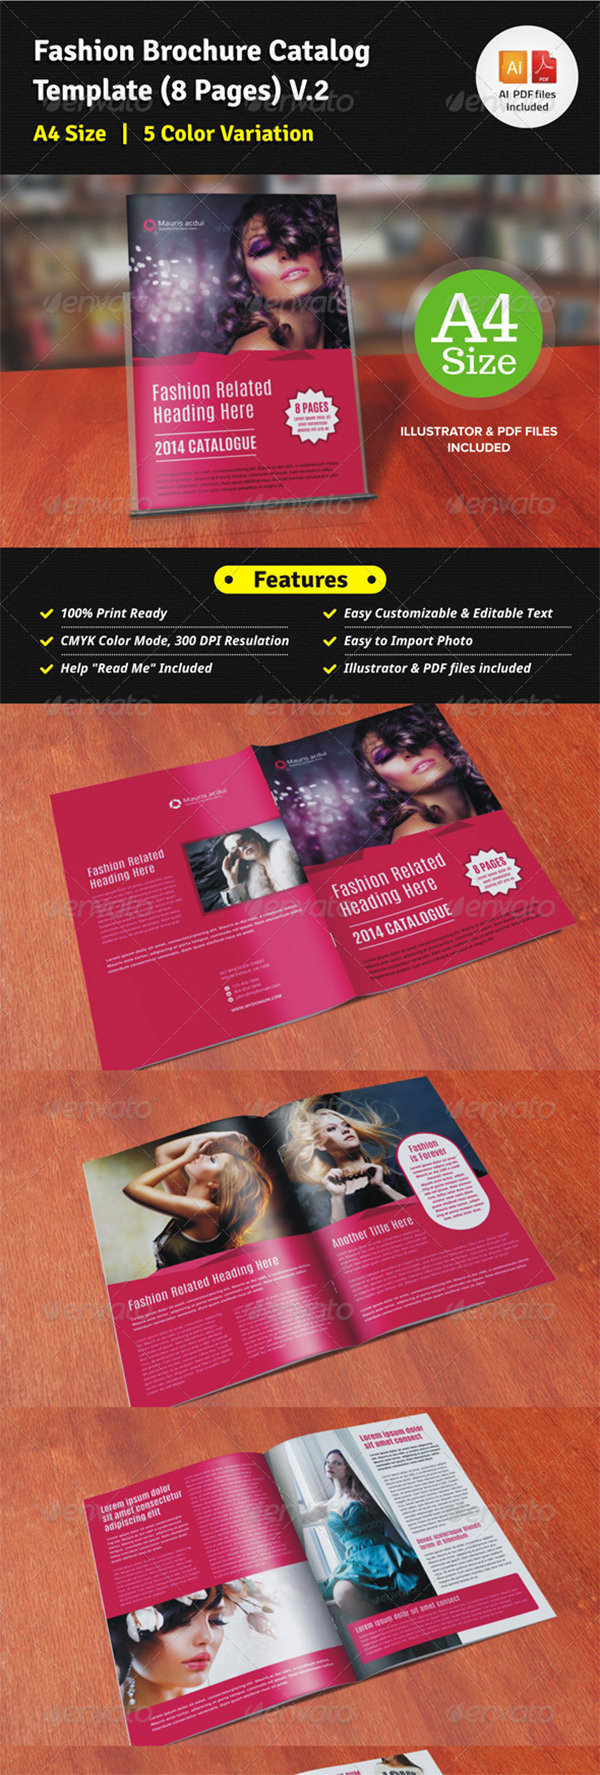 Fashion Brochure Catalog Template (12 Pages) V2